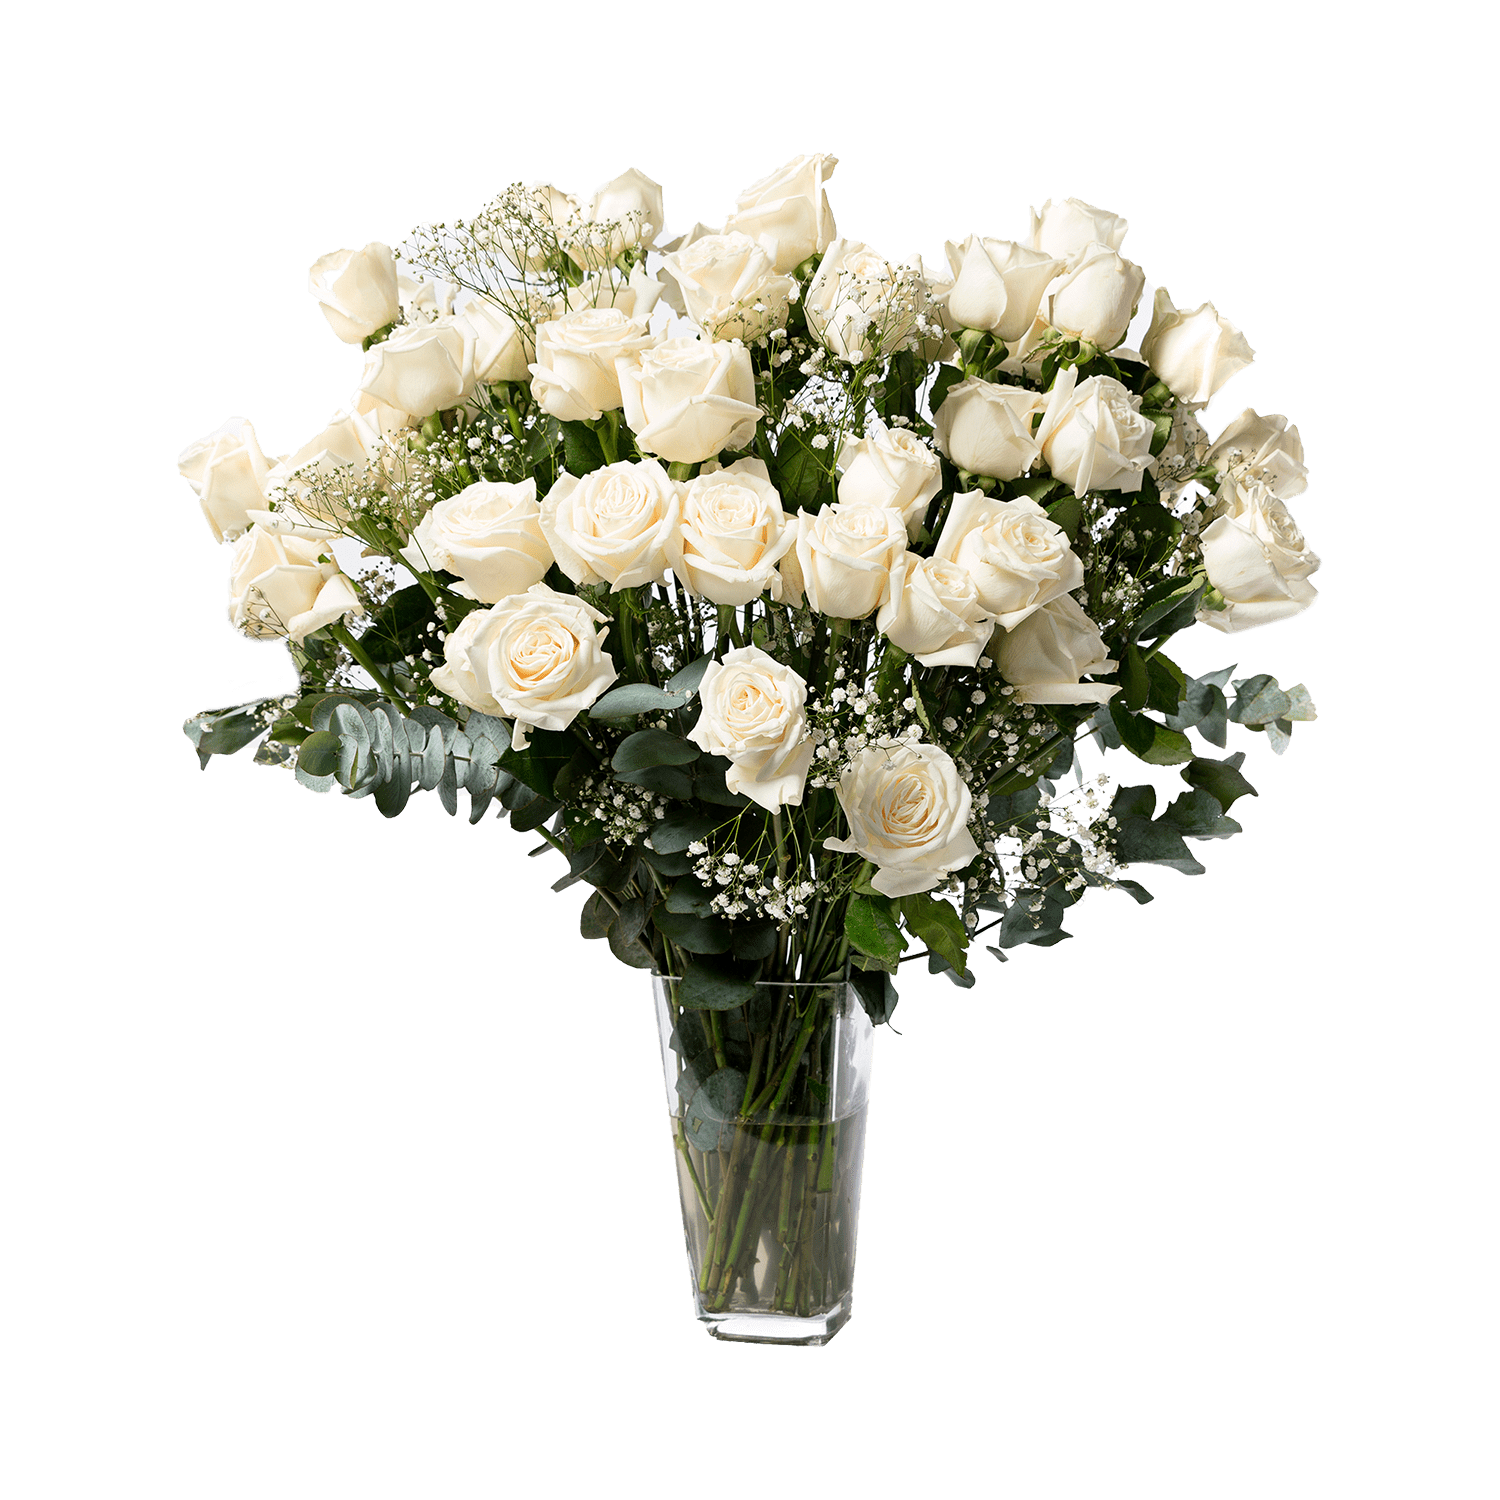 The Cloud 9 bouquet is designed for your busy friend who treats their home like their personal sanctuary; white flowers can help create serene environments.